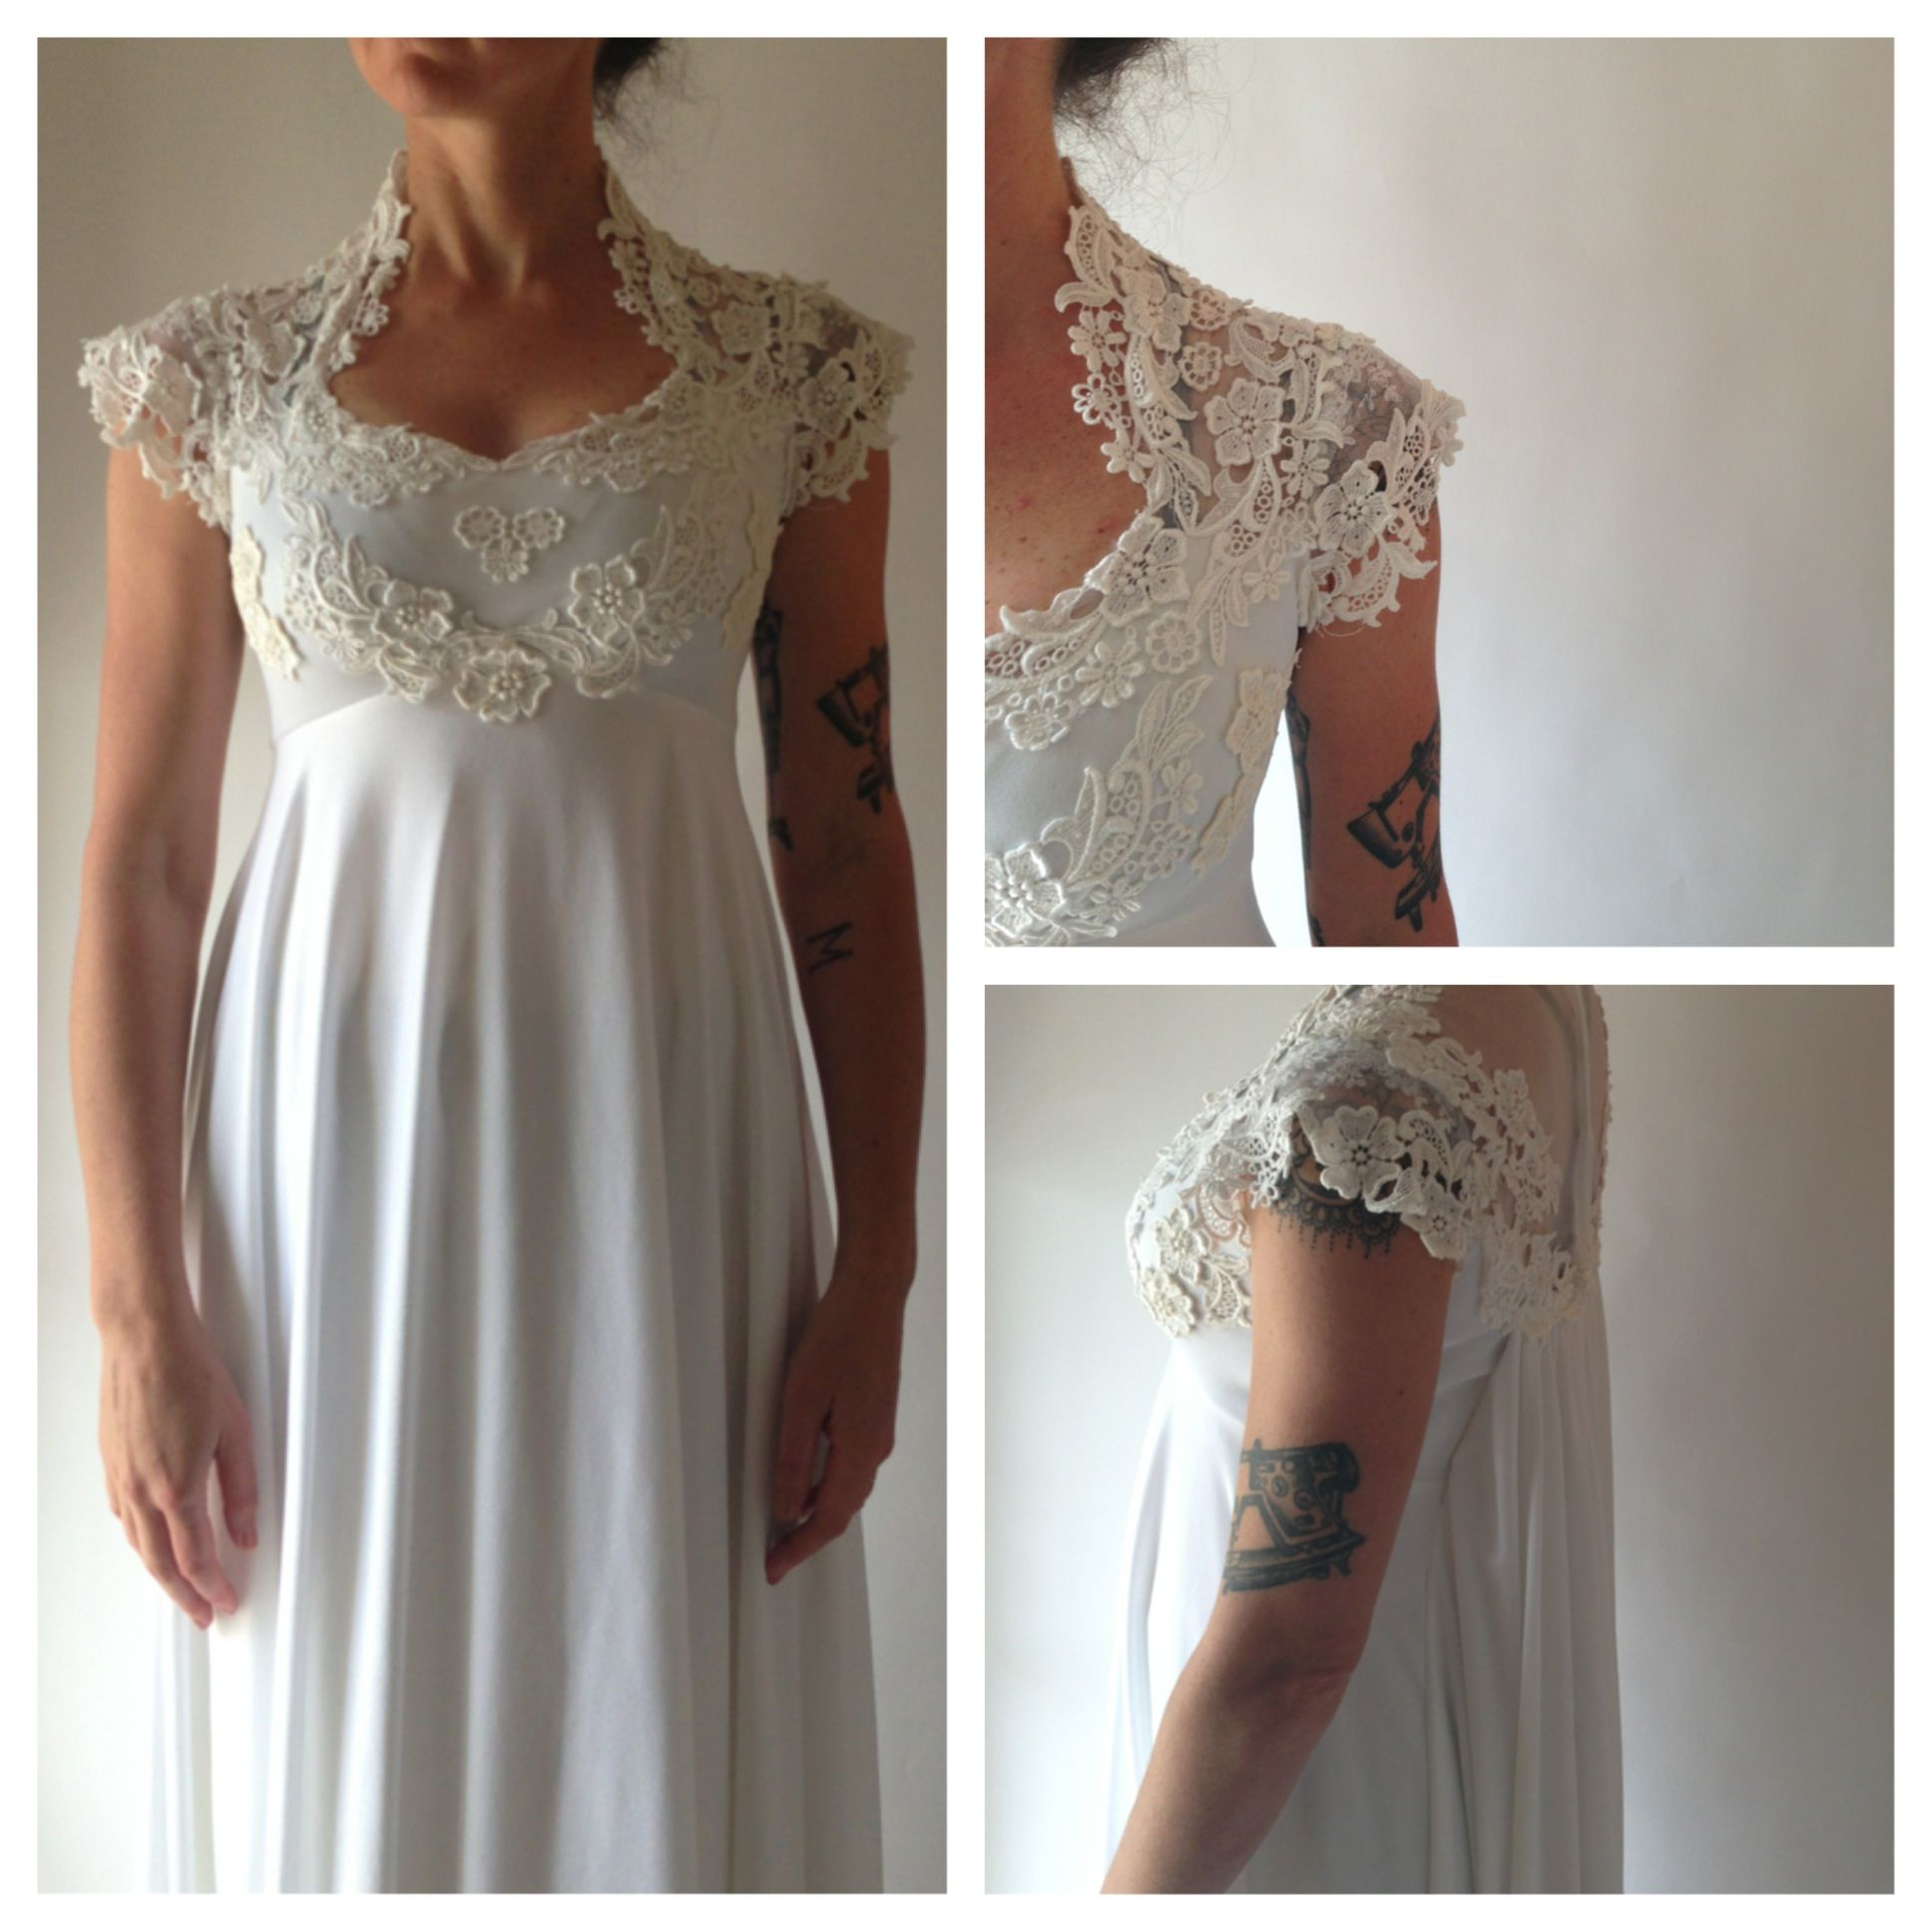 1960\'s lace and jersey knit wedding gown | bridal | Pinterest ...